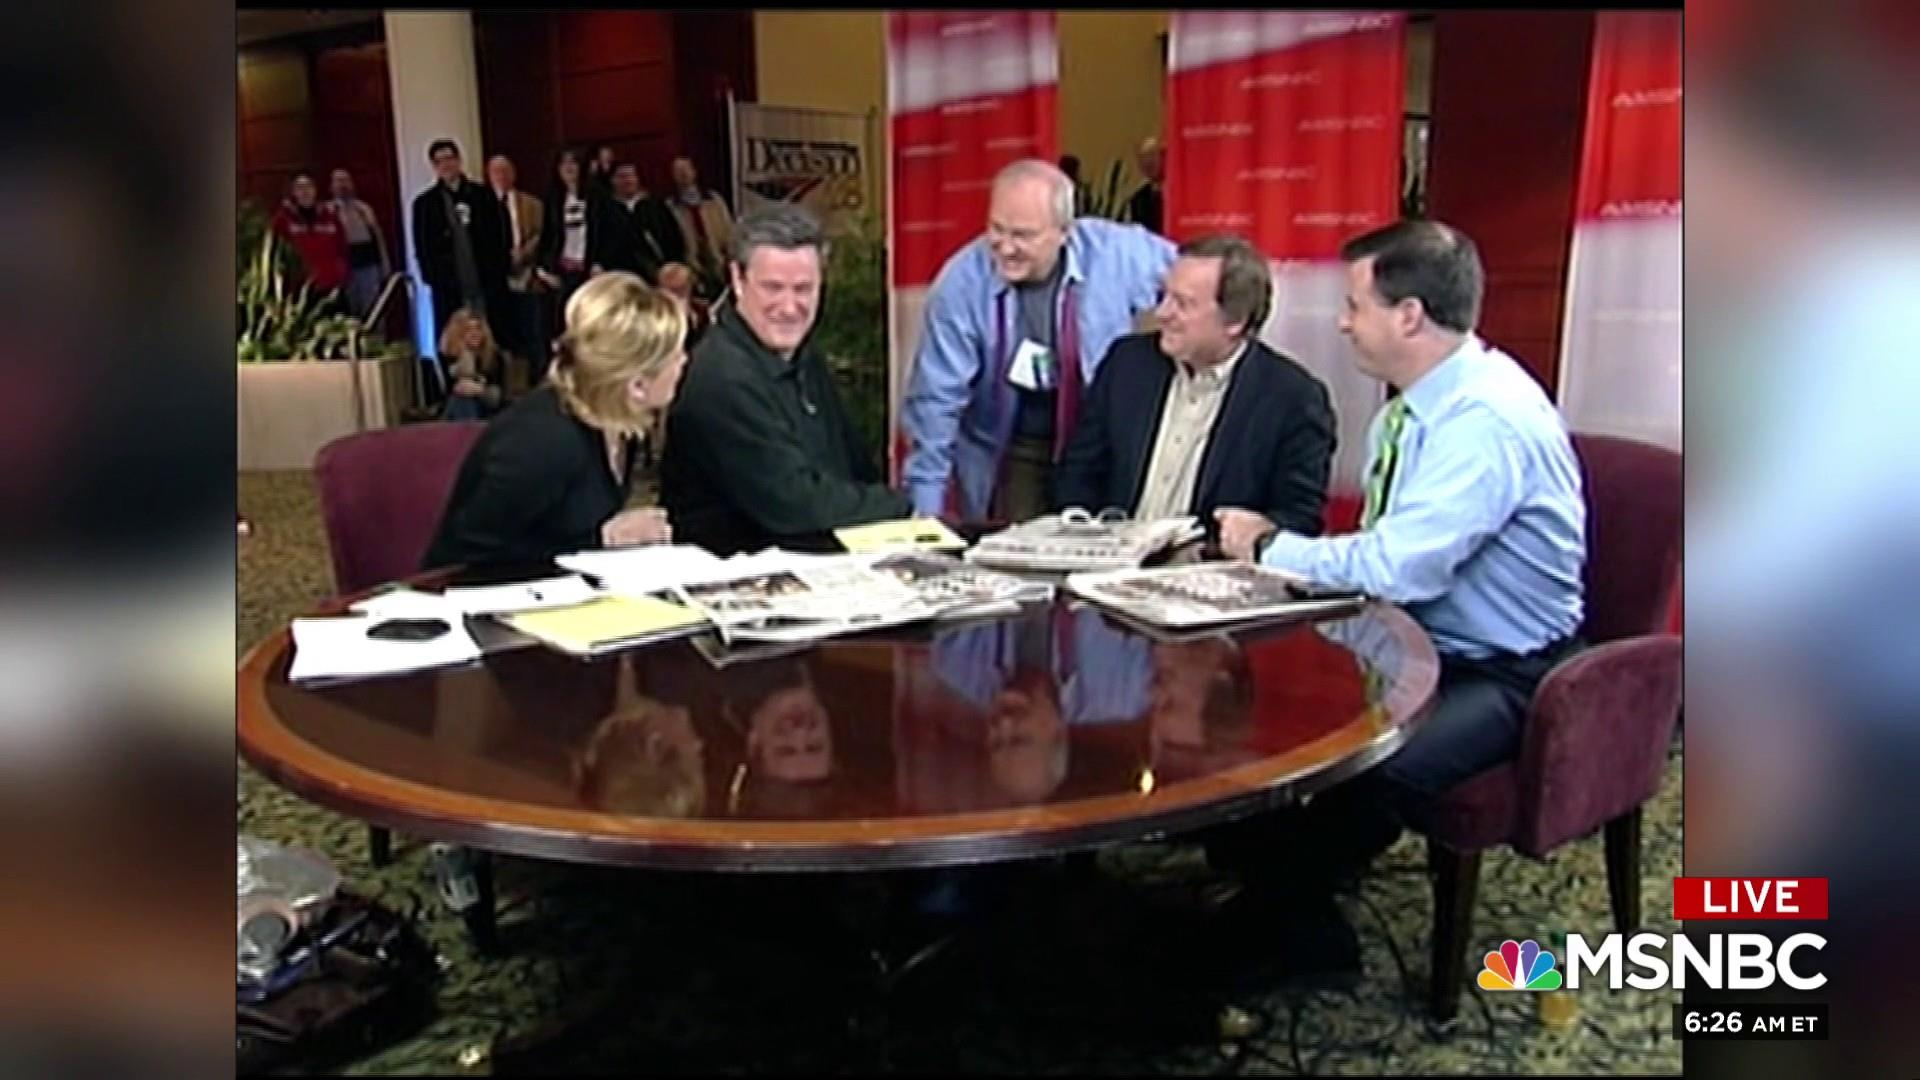 Remembering the life and legacy of Tim Russert